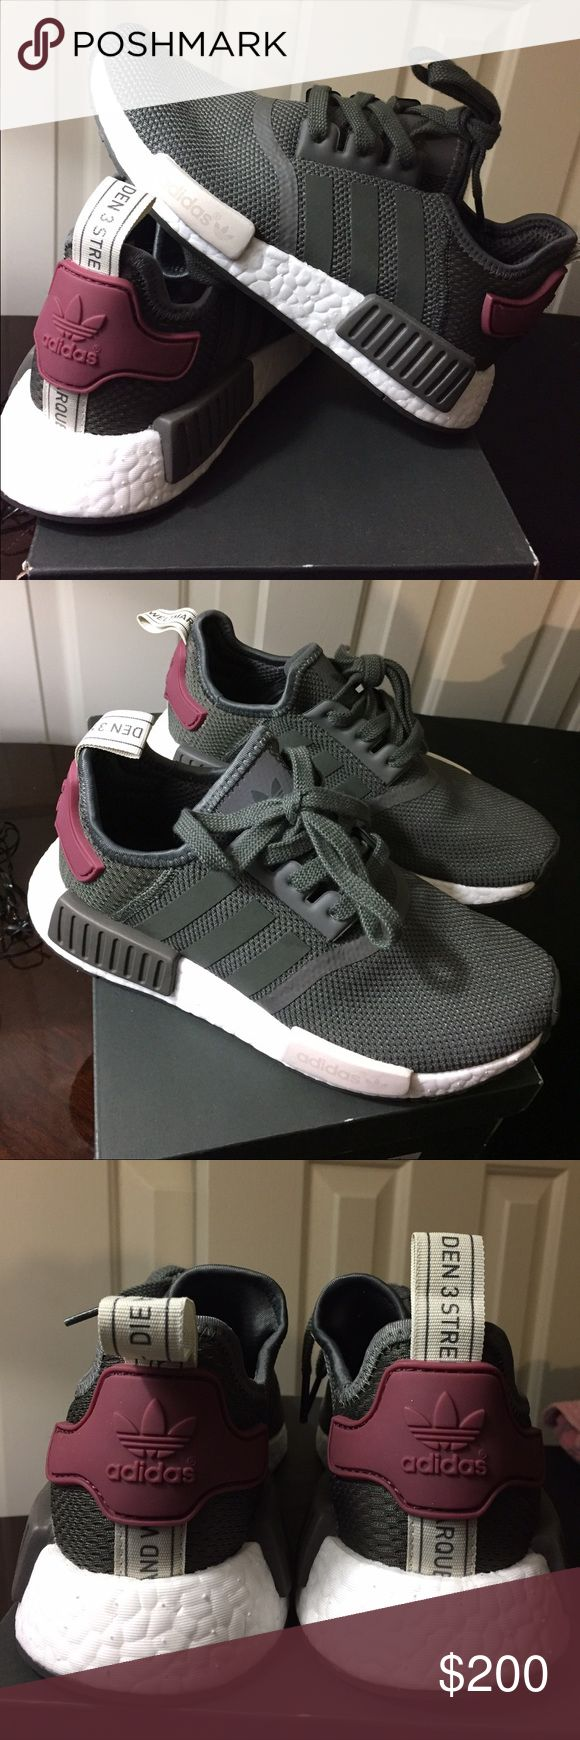 Wholesale Nmd R1 Primeknit Tri color Hertford County NC